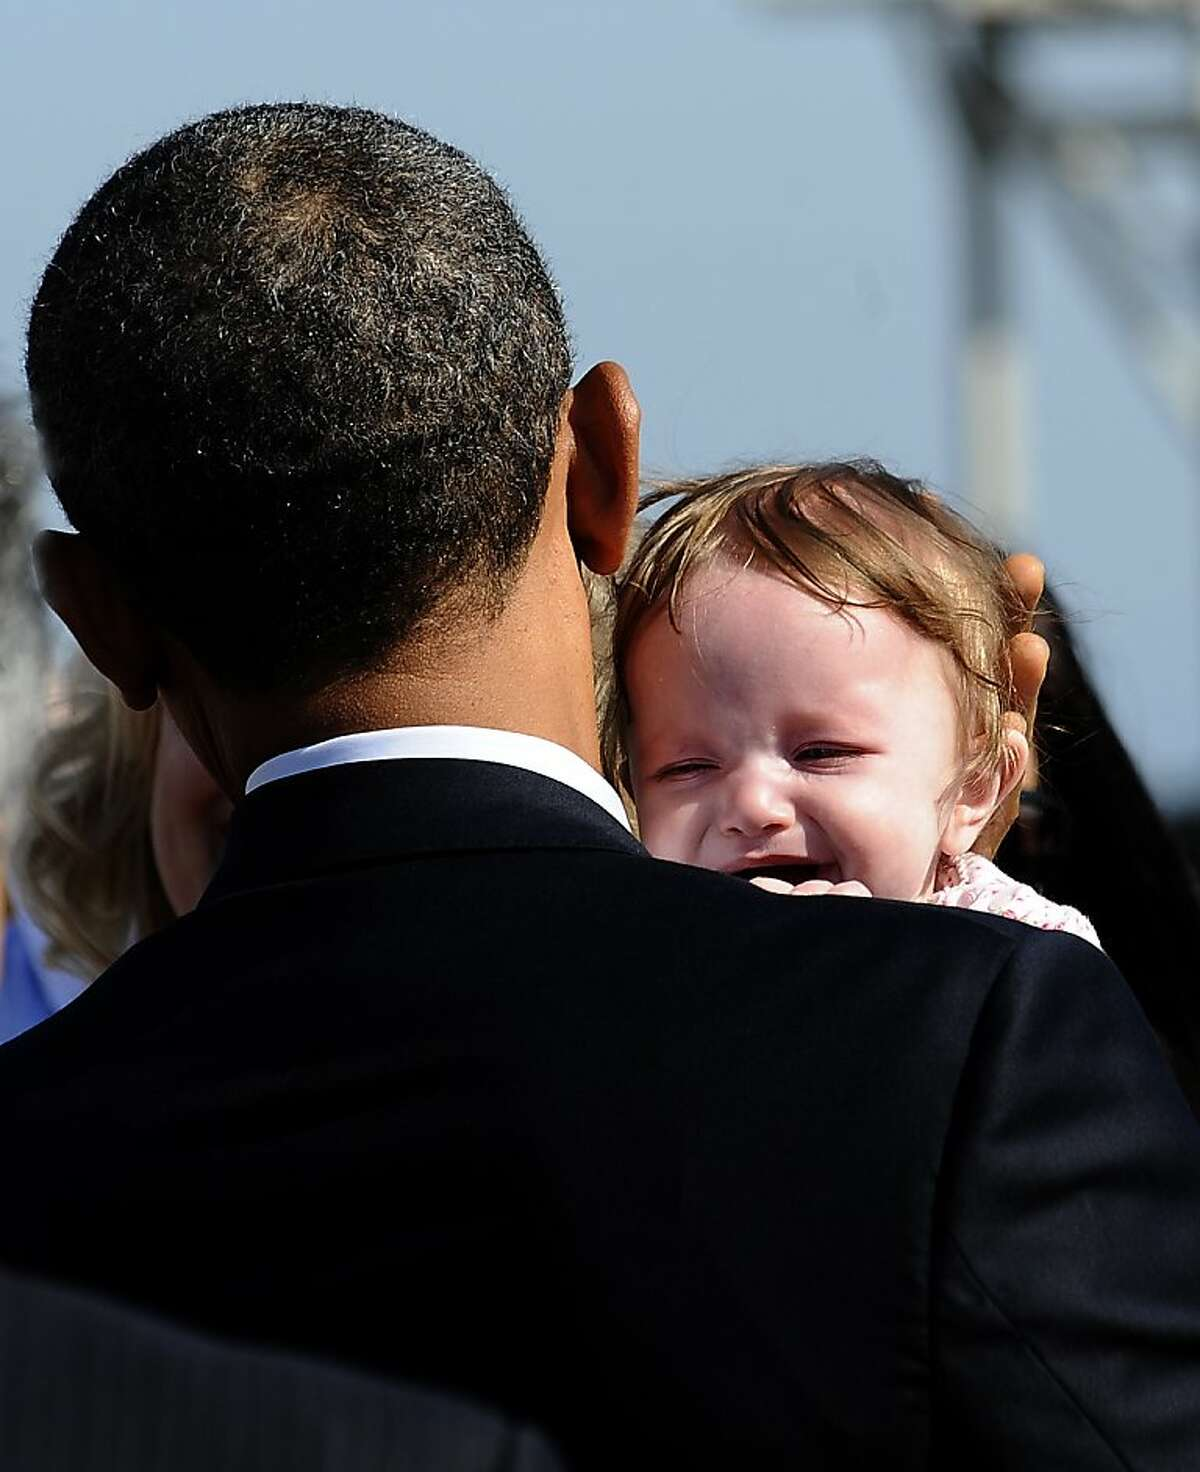 US President Barack Obama holds a baby as he greets people at San Francisco International Airport in San Francisco, California, on October 25, 2011. Obama unveiled a stopgap plan Monday to ease the bite of the real estate crisis for cash-strapped homeowners while attacking Congress for blocking spending to create more jobs. Thwarted by Republican opposition to his bigger jobs and stimulus package, Obama has shifted tactics by looking for action he can take without congressional approval to provide at least modest economic relief. AFP Photo/Jewel Samad (Photo credit should read JEWEL SAMAD/AFP/Getty Images)